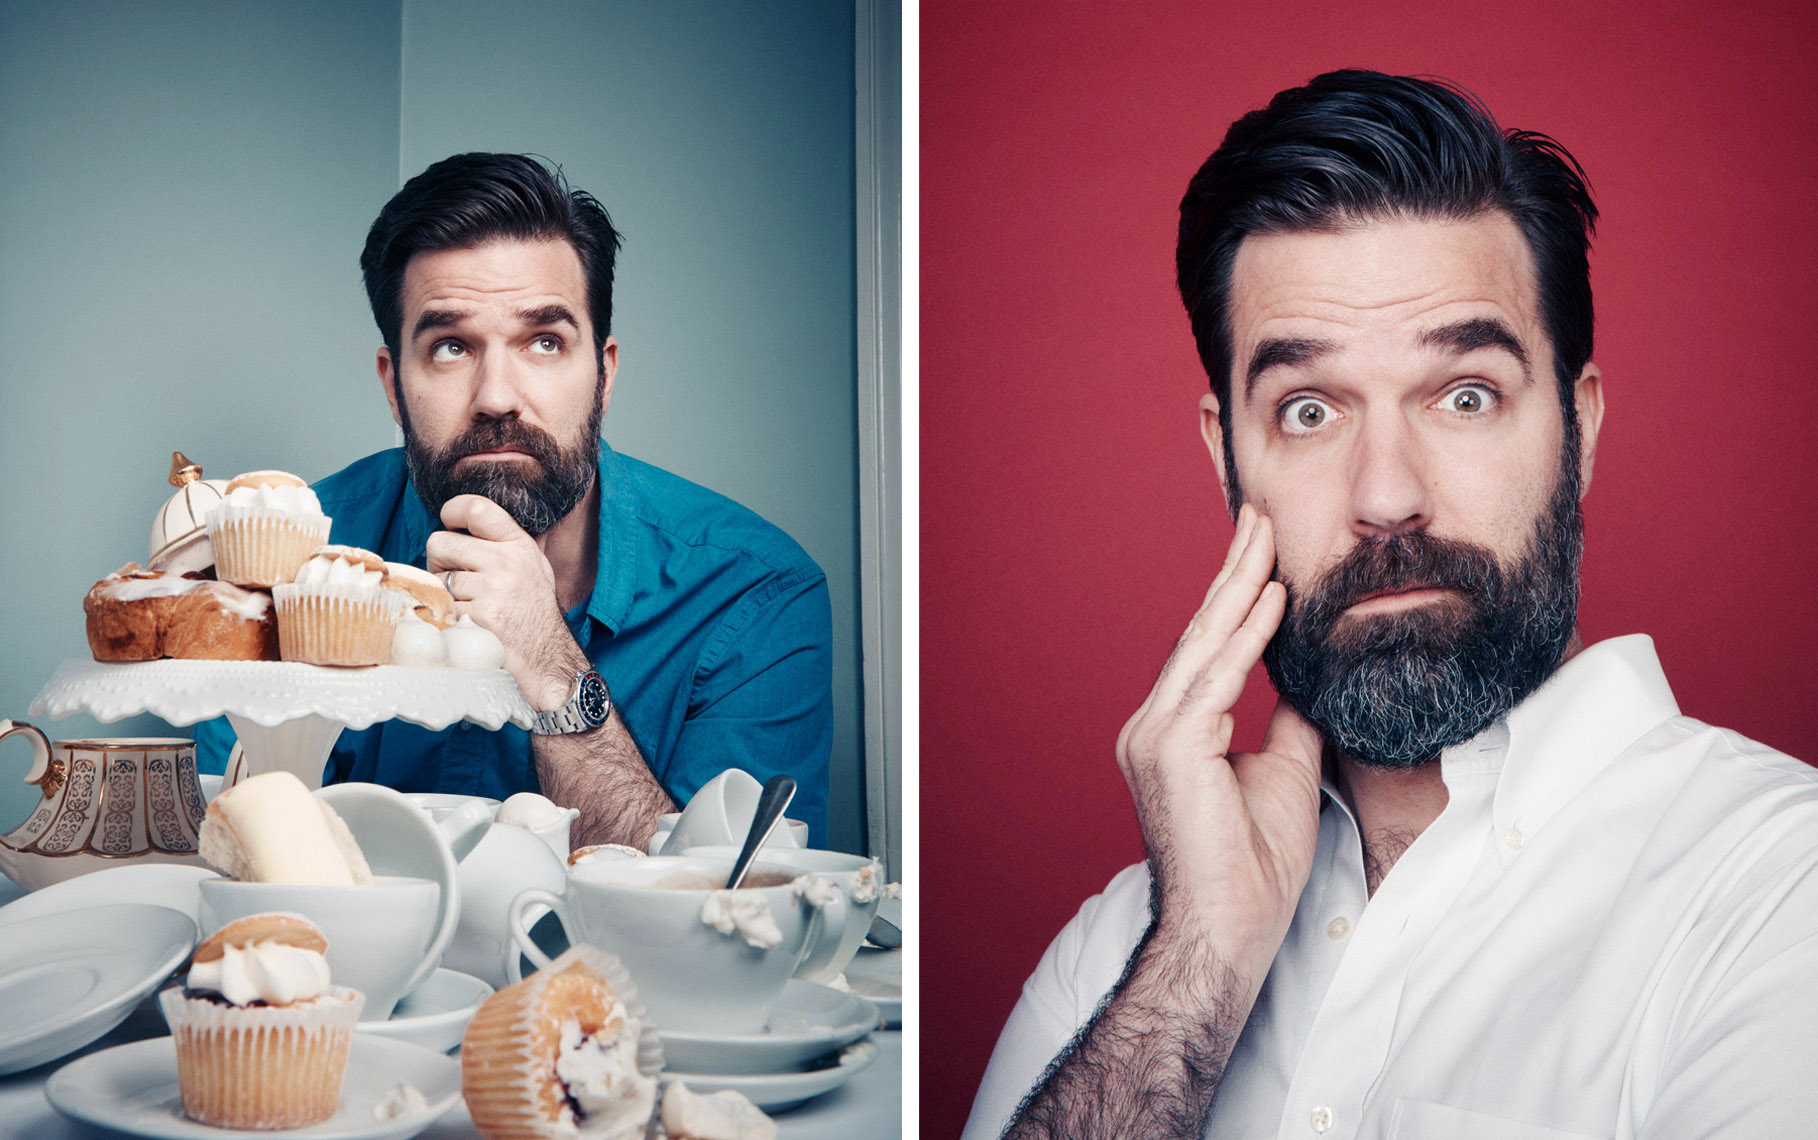 Rob Delaney photographed for Boston Globe